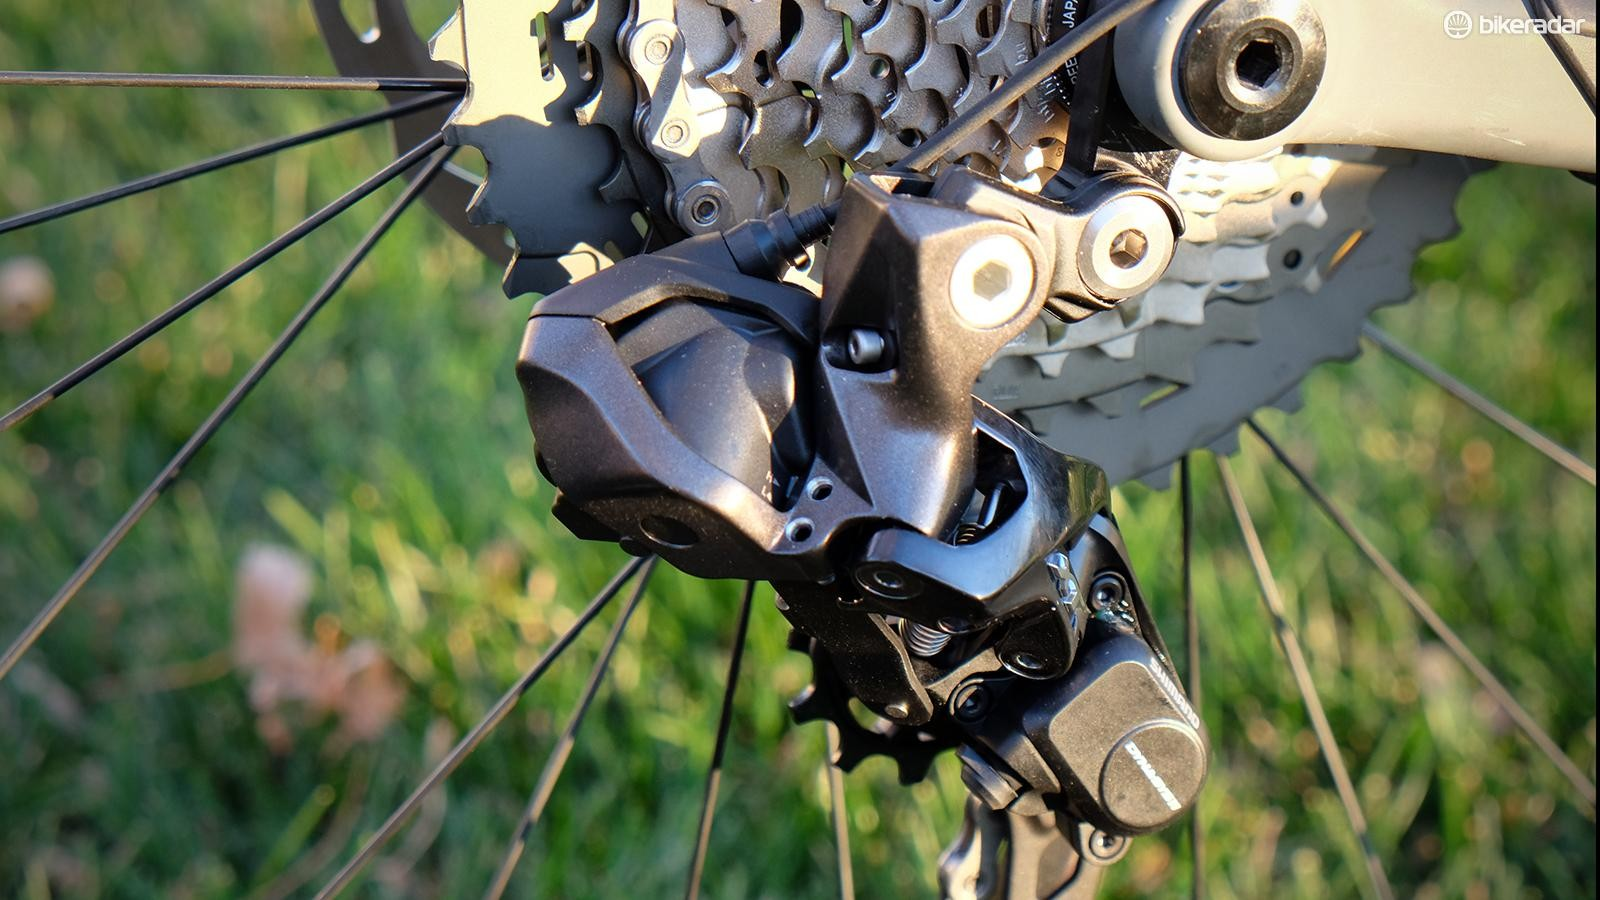 A servo at the rear of the derailleur shifts gears